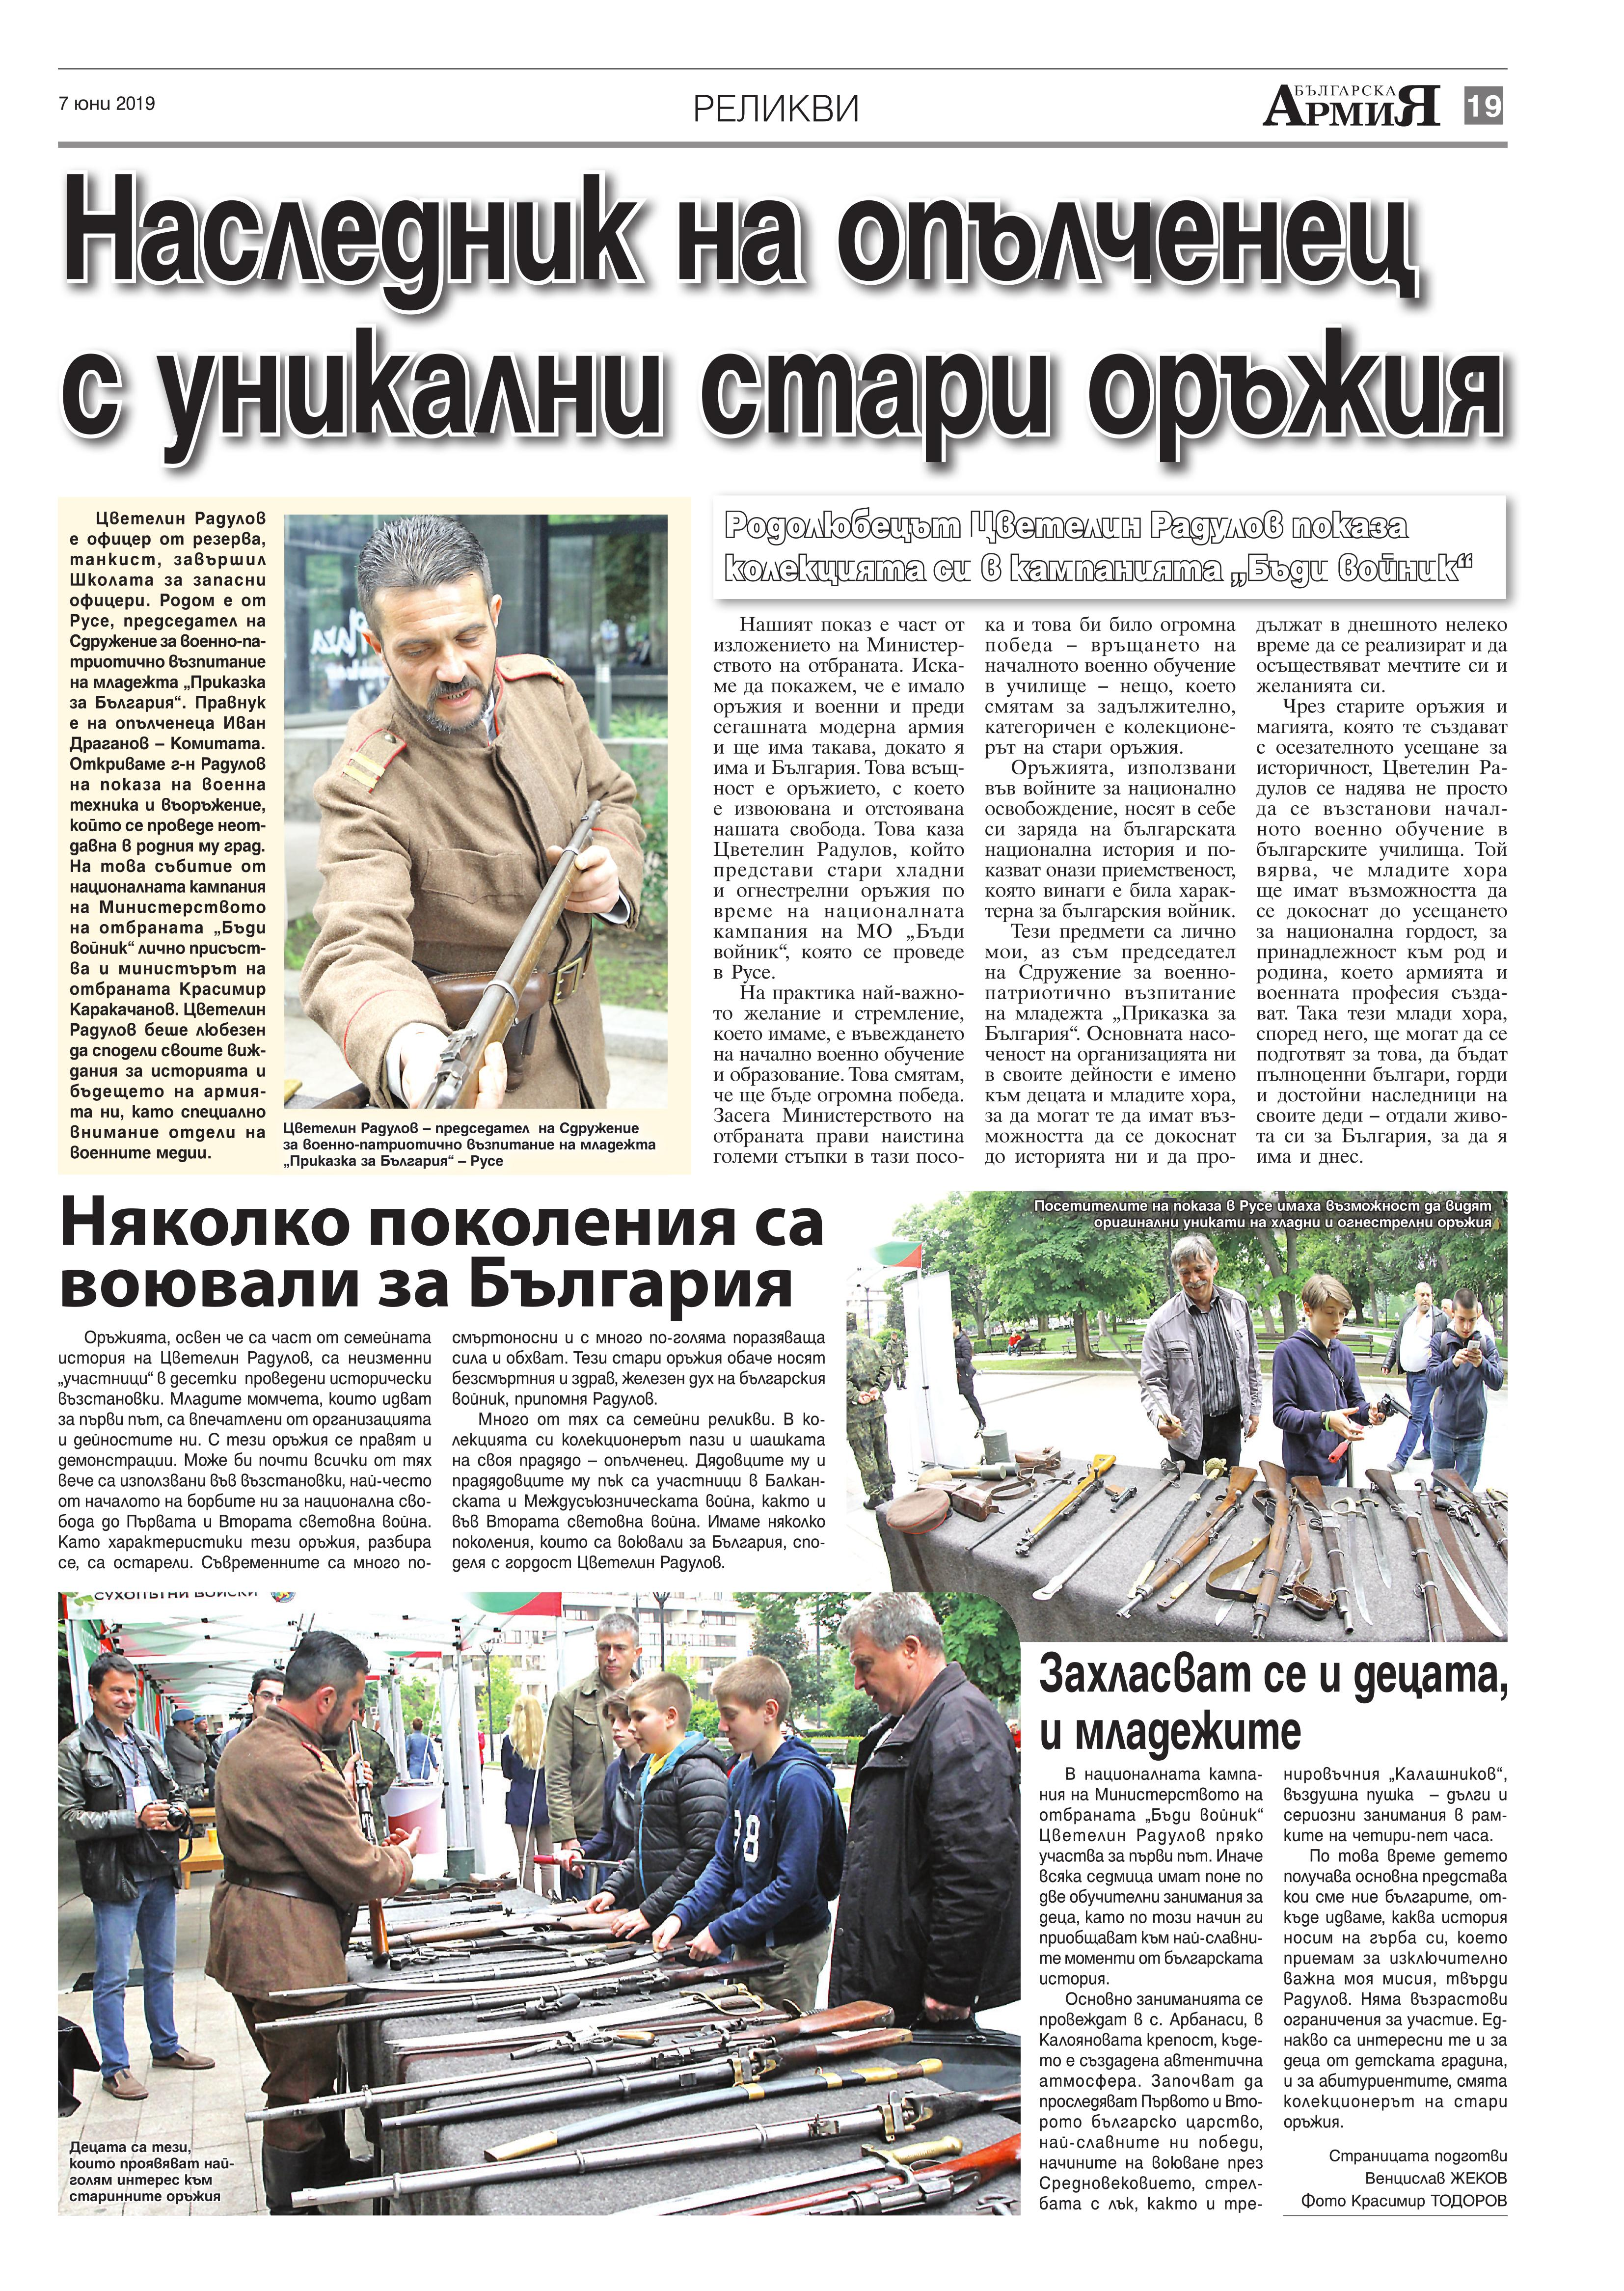 https://www.armymedia.bg/wp-content/uploads/2015/06/19.page1_-99.jpg